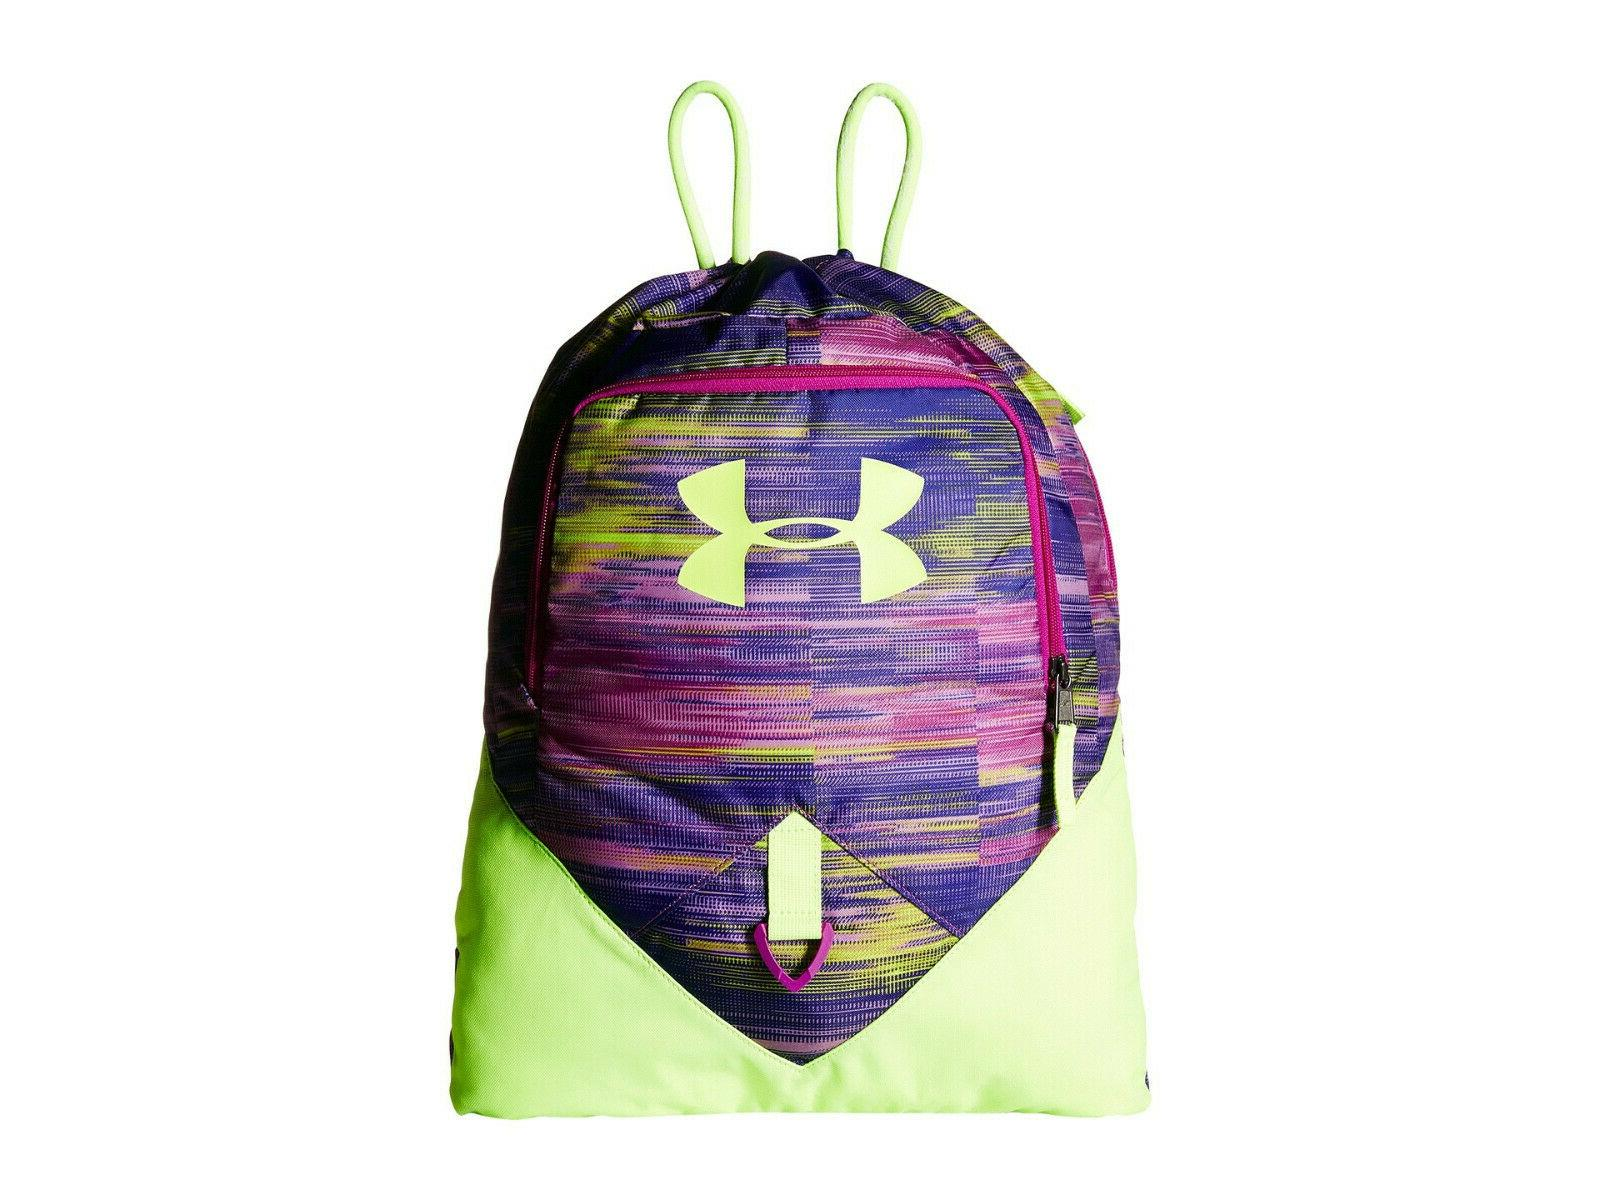 Under Armour Unisex Sackpack /Drawstring Green